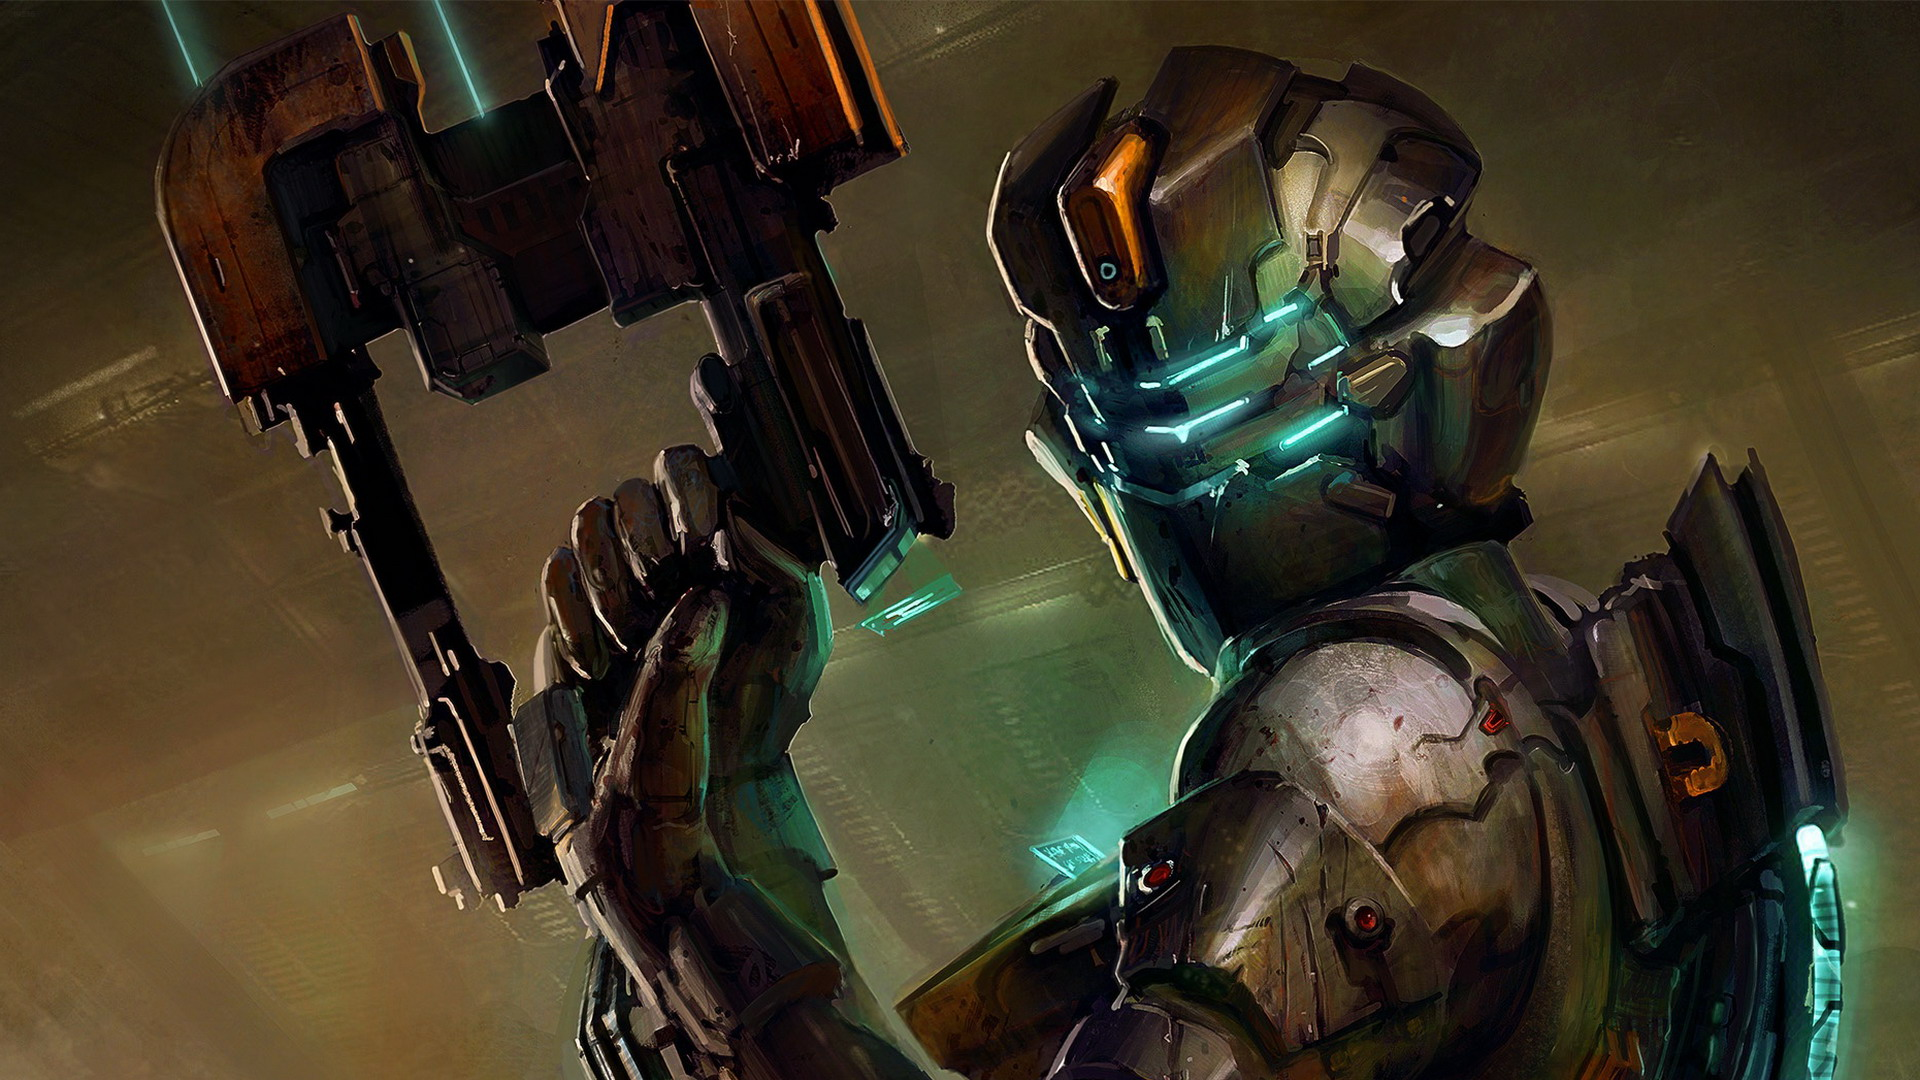 Dead space android apk free | APK MANIA™ Full » Dead Space